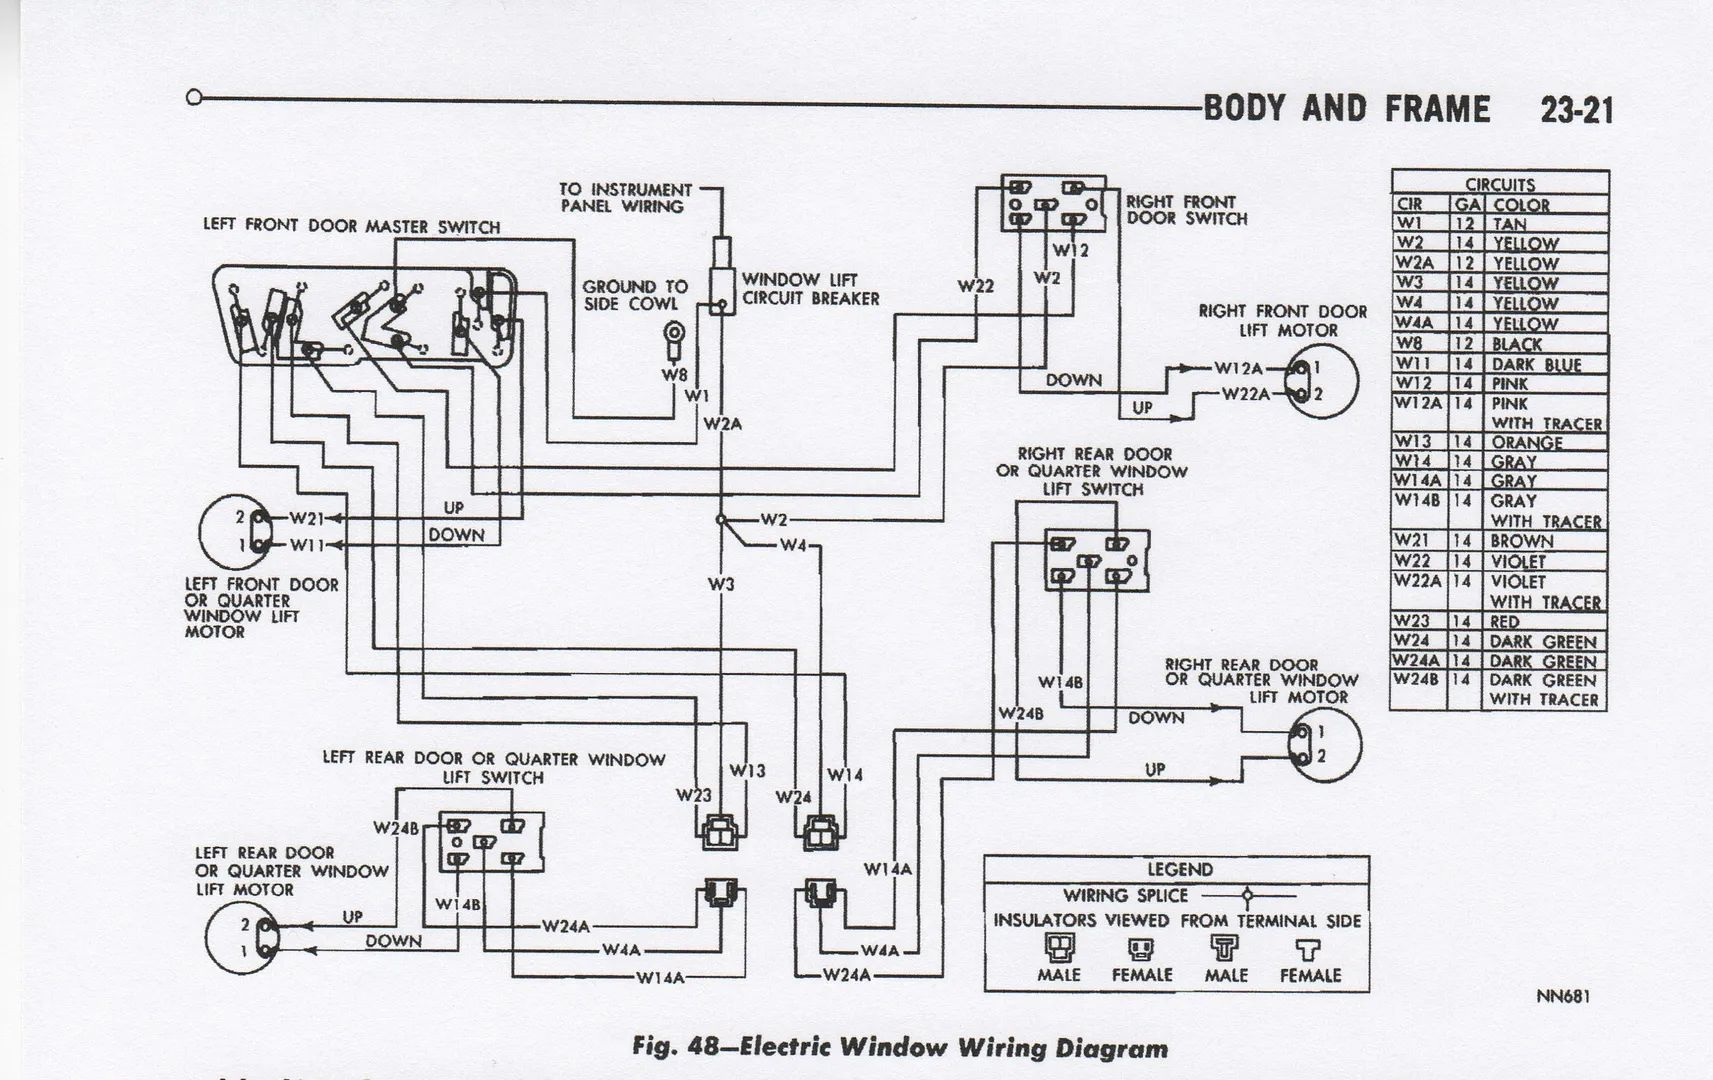 1968 coronet wiring diagram